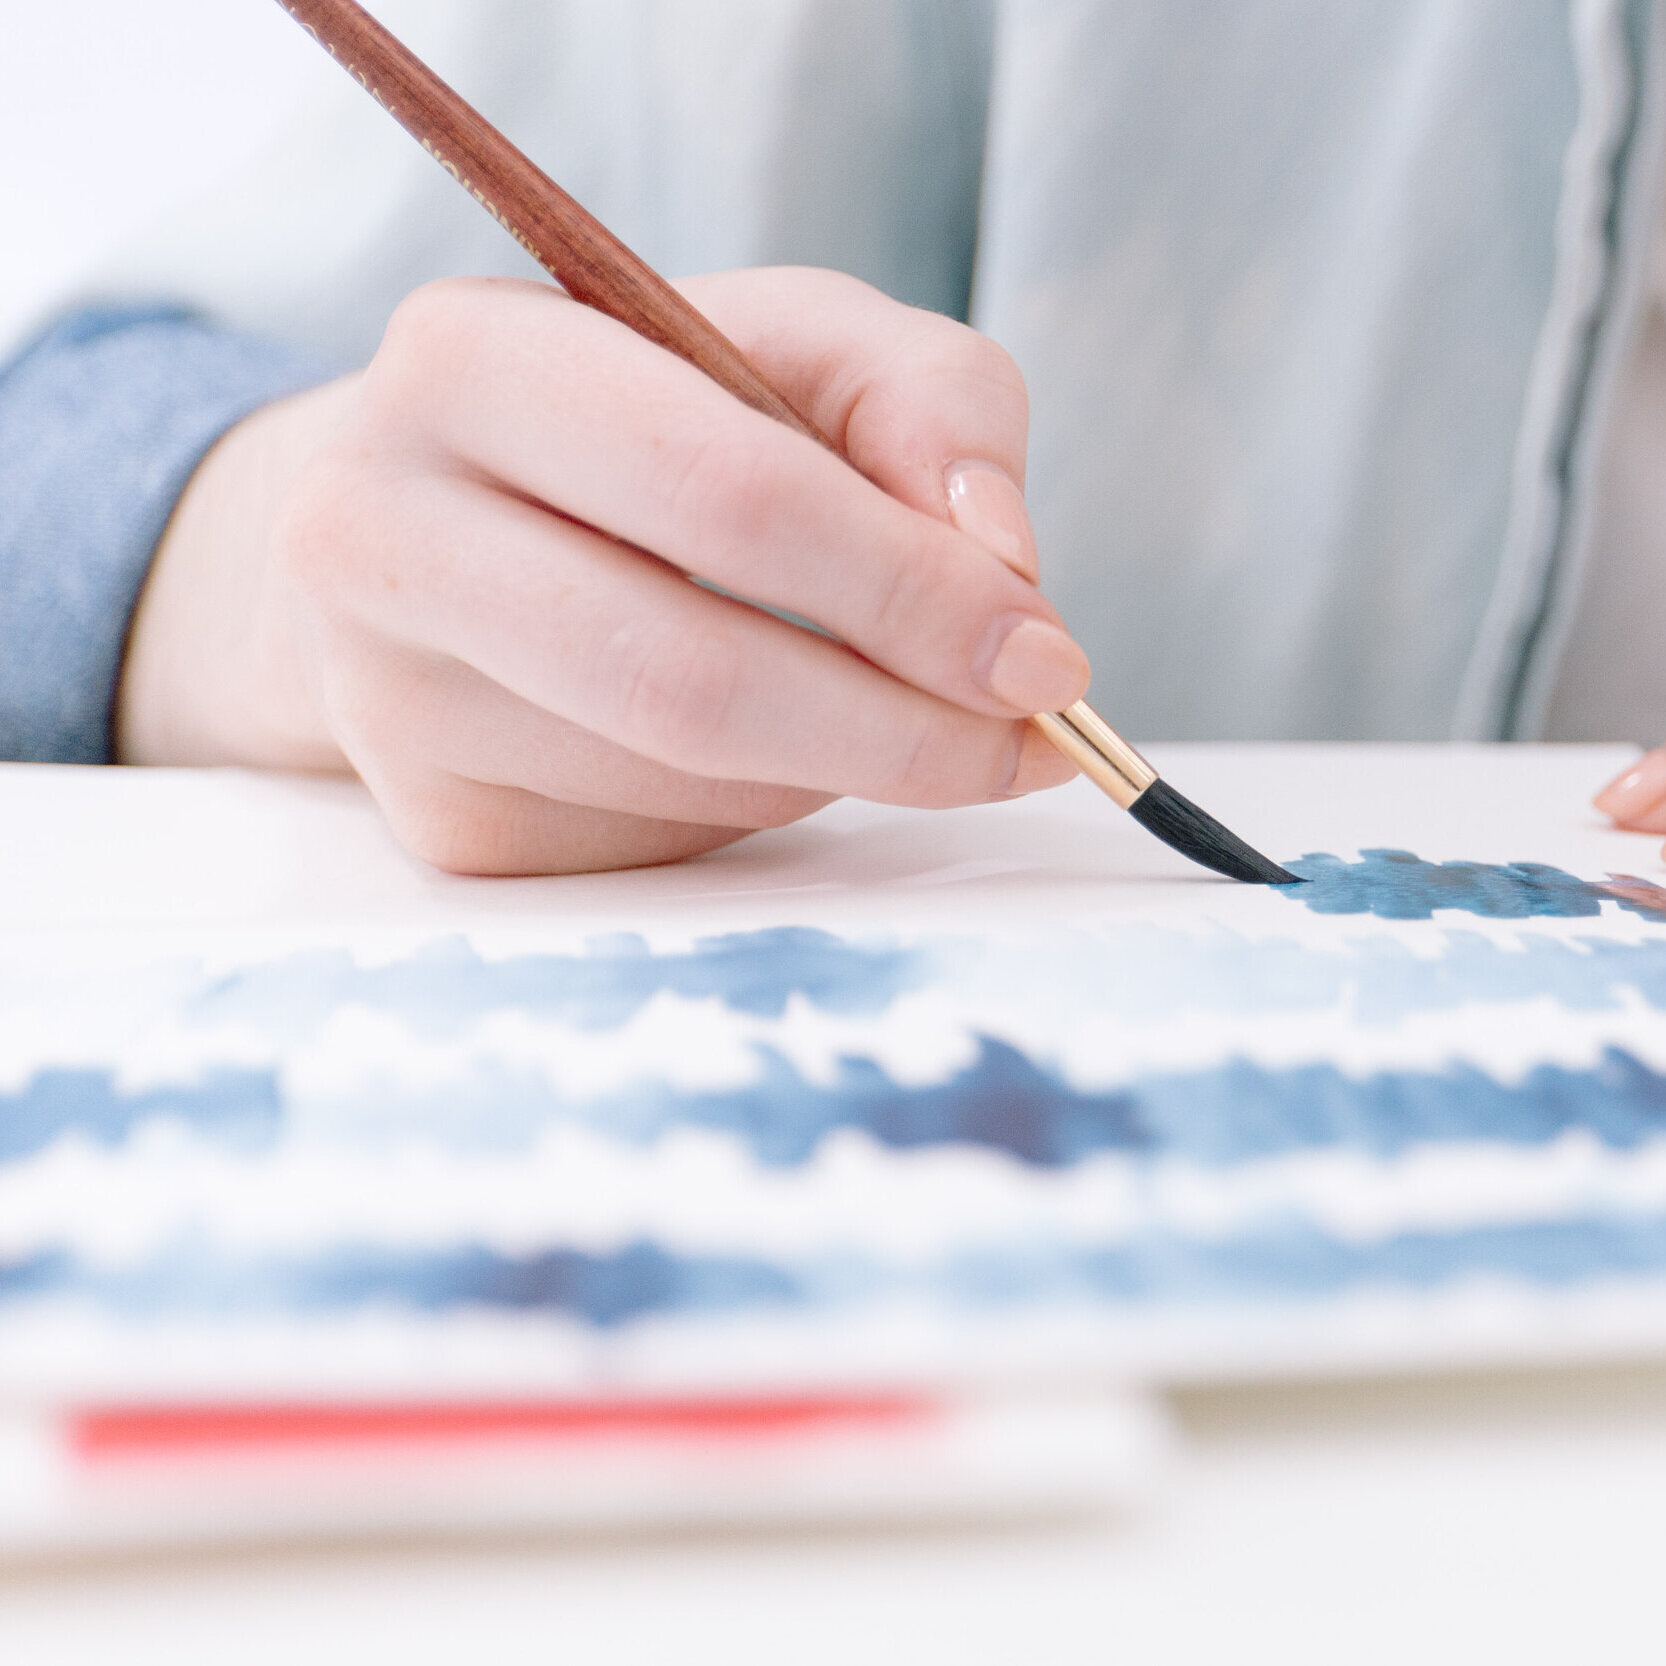 2. LEARN - Weekly video tutorials are released along with a photo reference, outline drawing, and step by step instructions to guide you in recreating the project while expressing your own style!